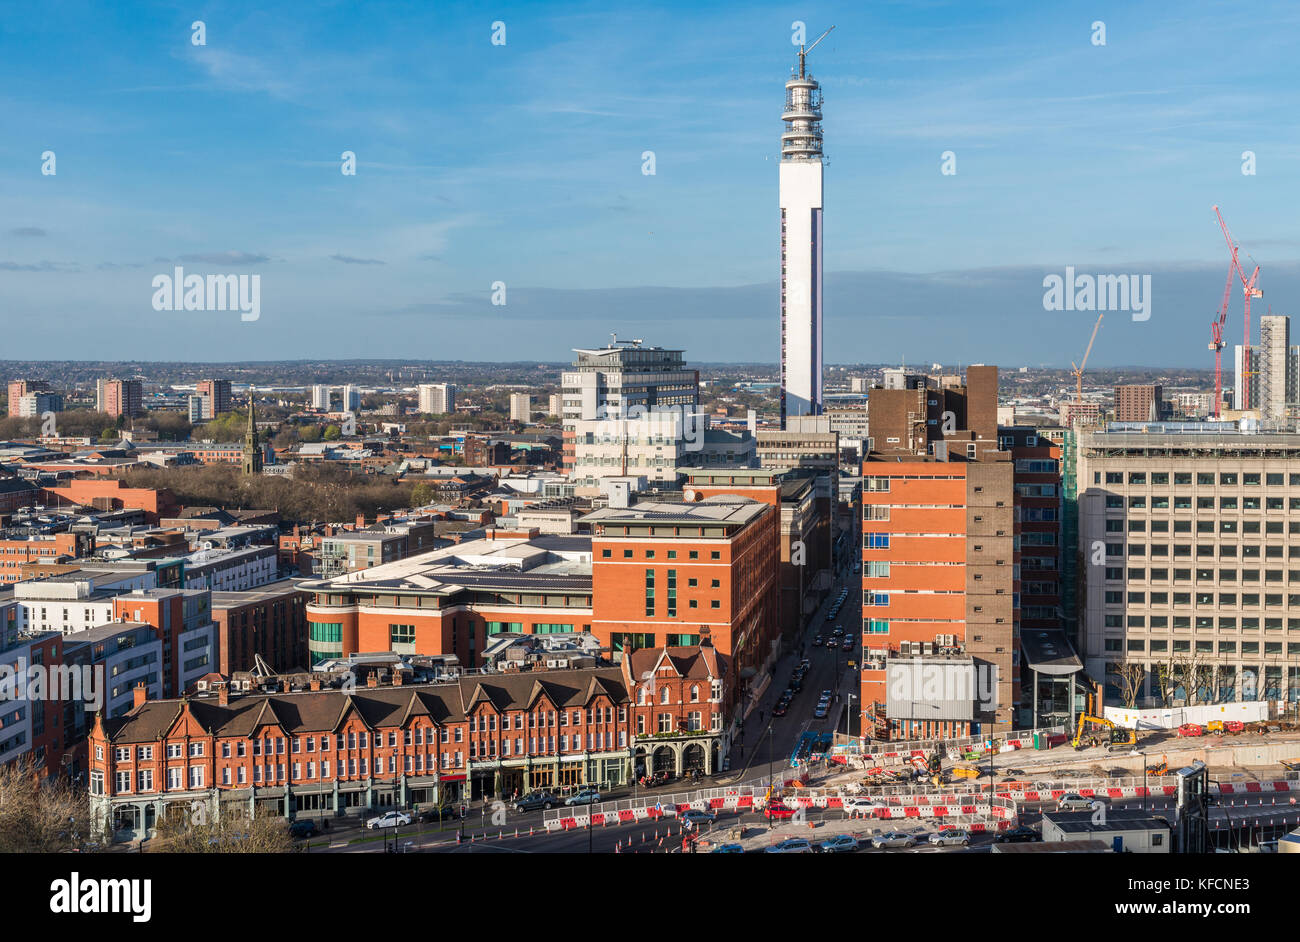 Birmingham, West Midlands, UK skyline. The city is the second biggest in England after London - Stock Image